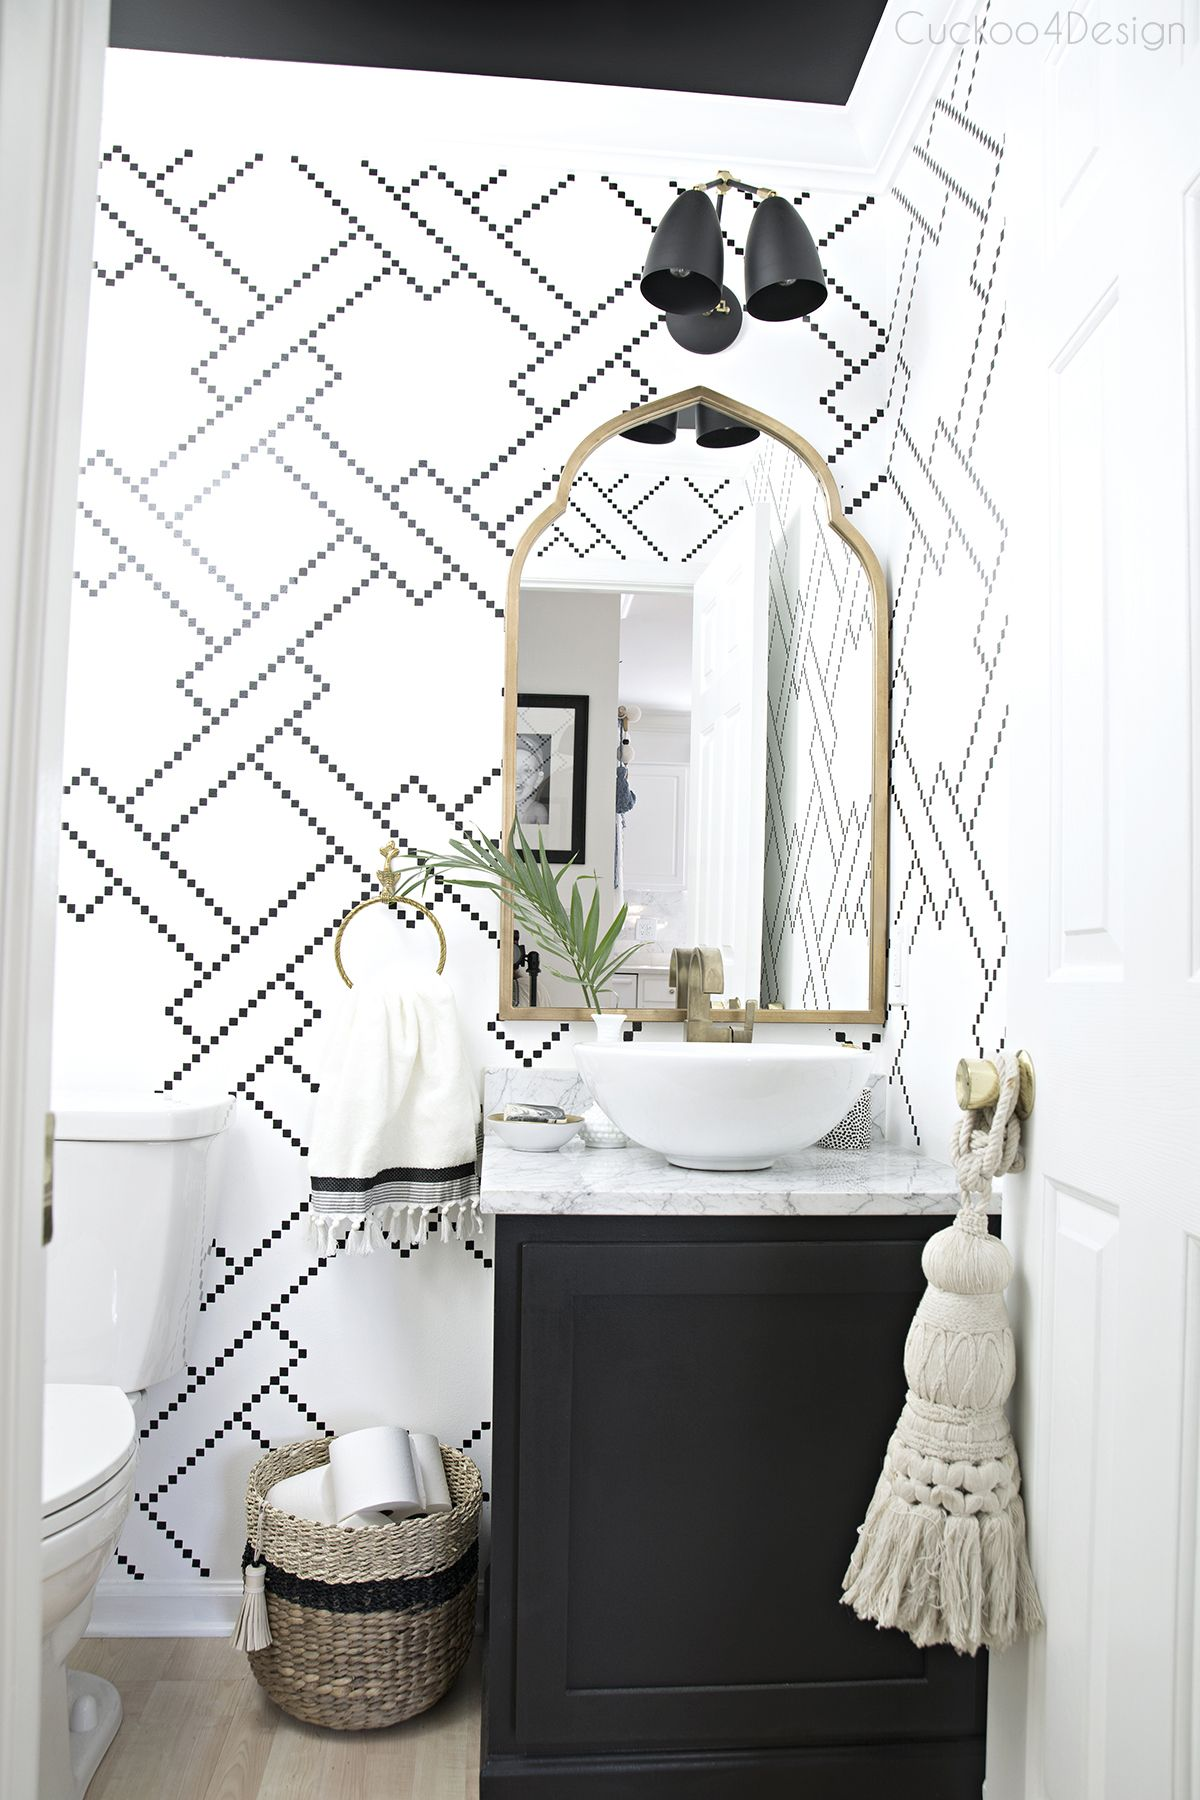 A hint of fall tour | Cuckoo 4 My HoMe | Powder room